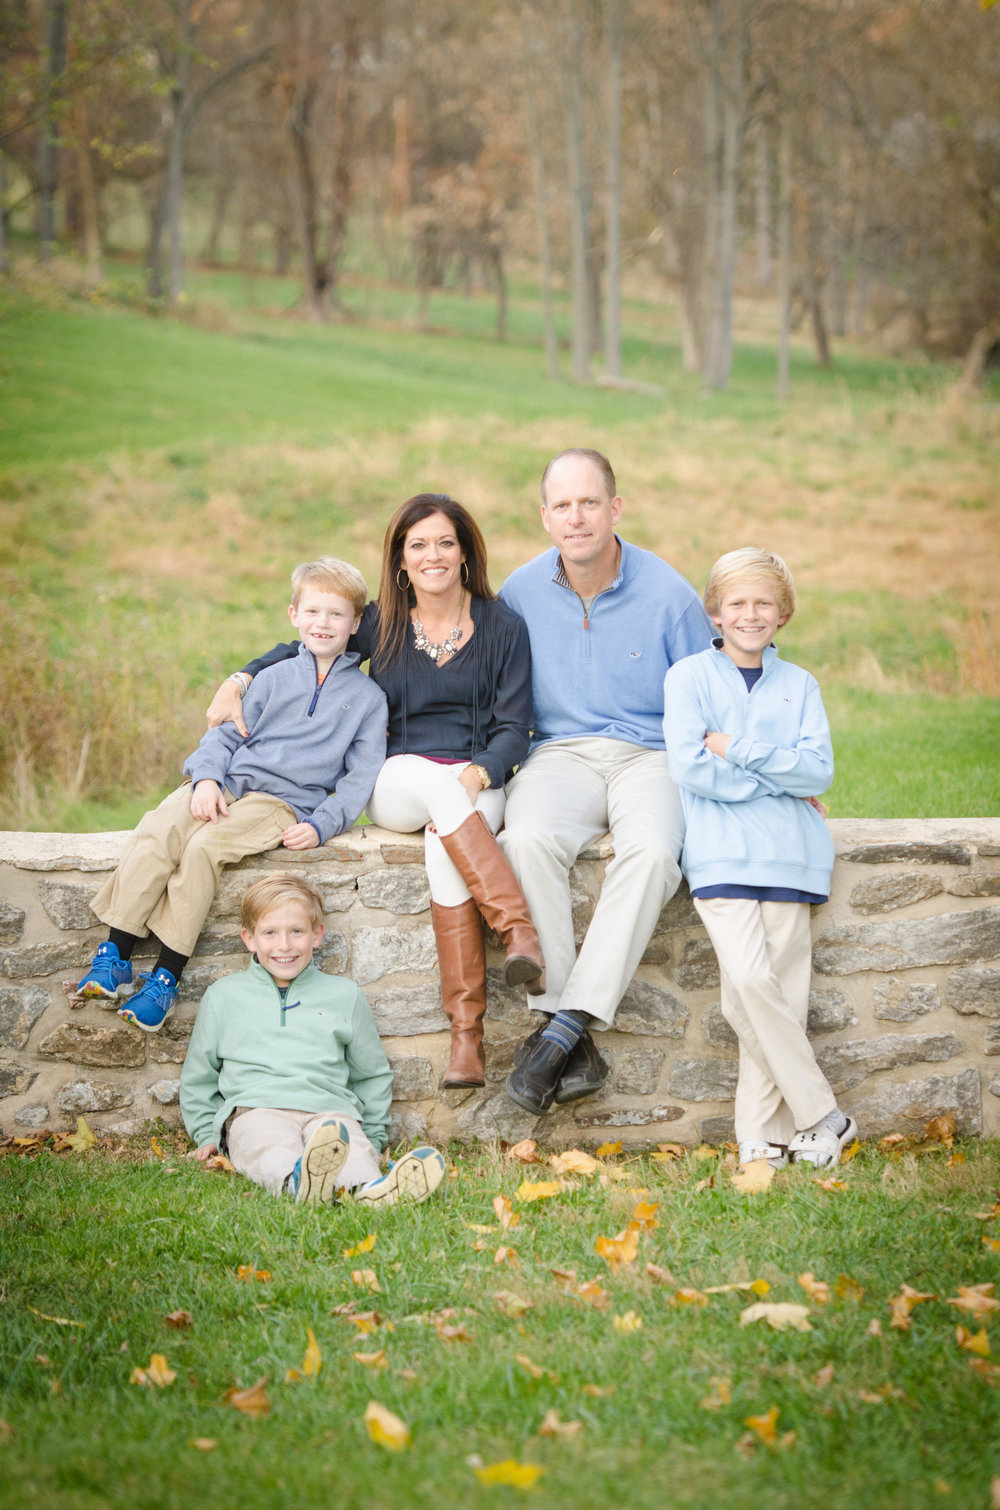 Hook Family Portraits-Hook Family Portraits-0054.jpg